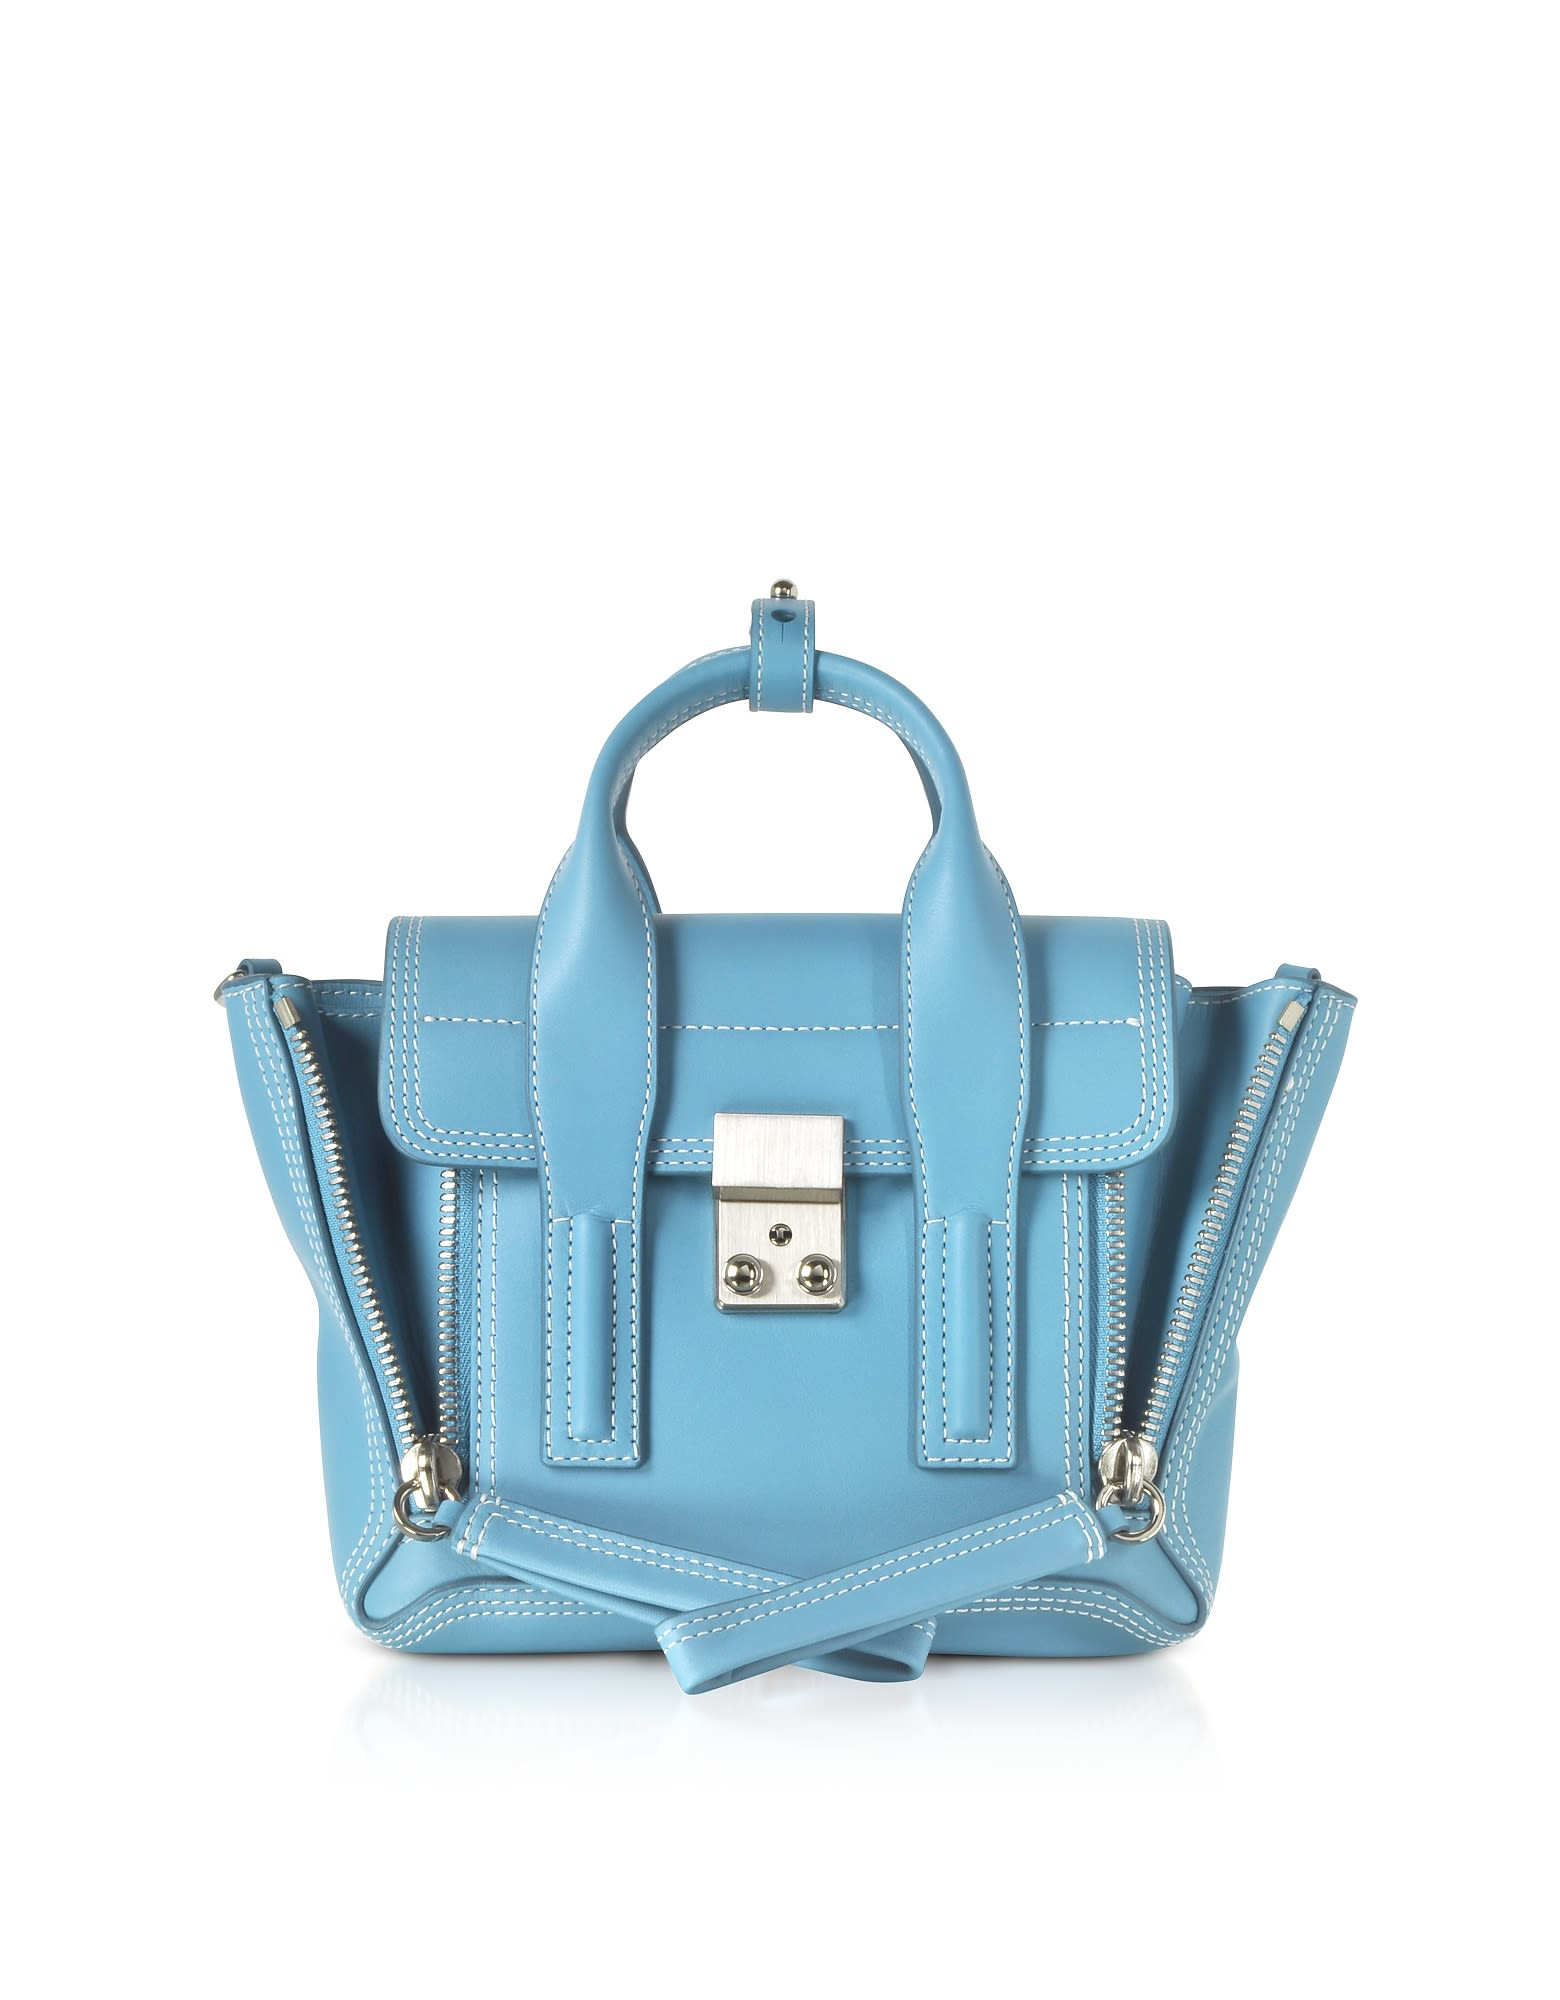 c2d109ae5ead 3.1 Phillip Lim 3.1 Phillip Lim Pashli Mini Satchel Bag - Basic ...